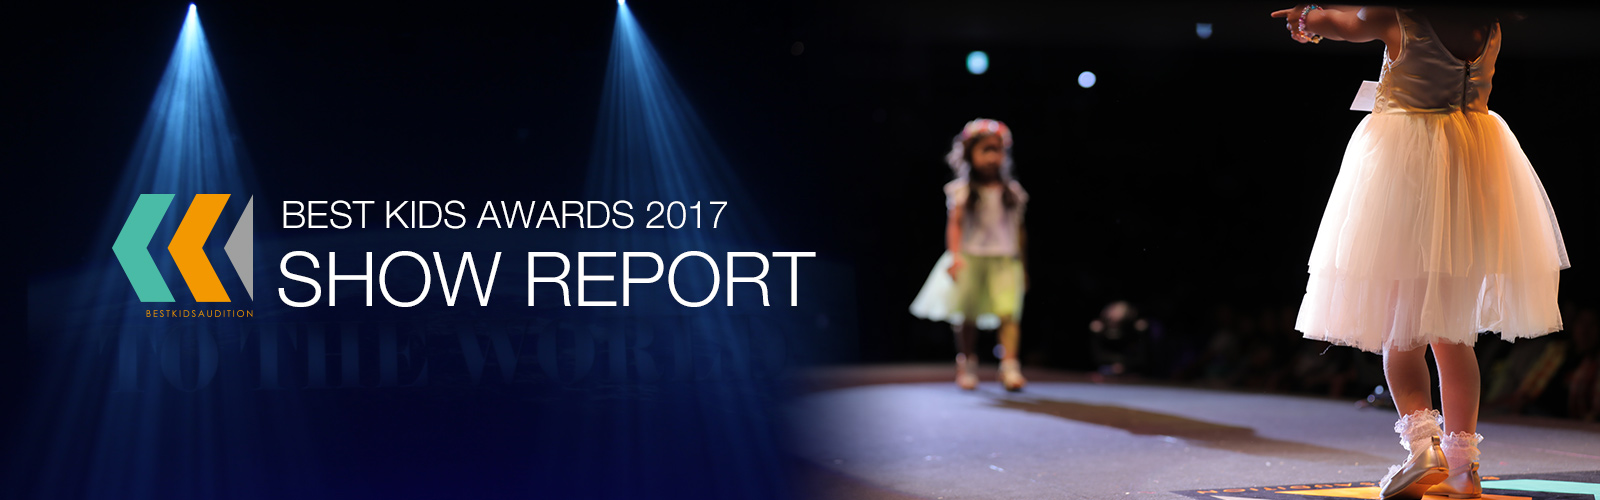 BEST KIDS AWARDS 2017 開催レポート